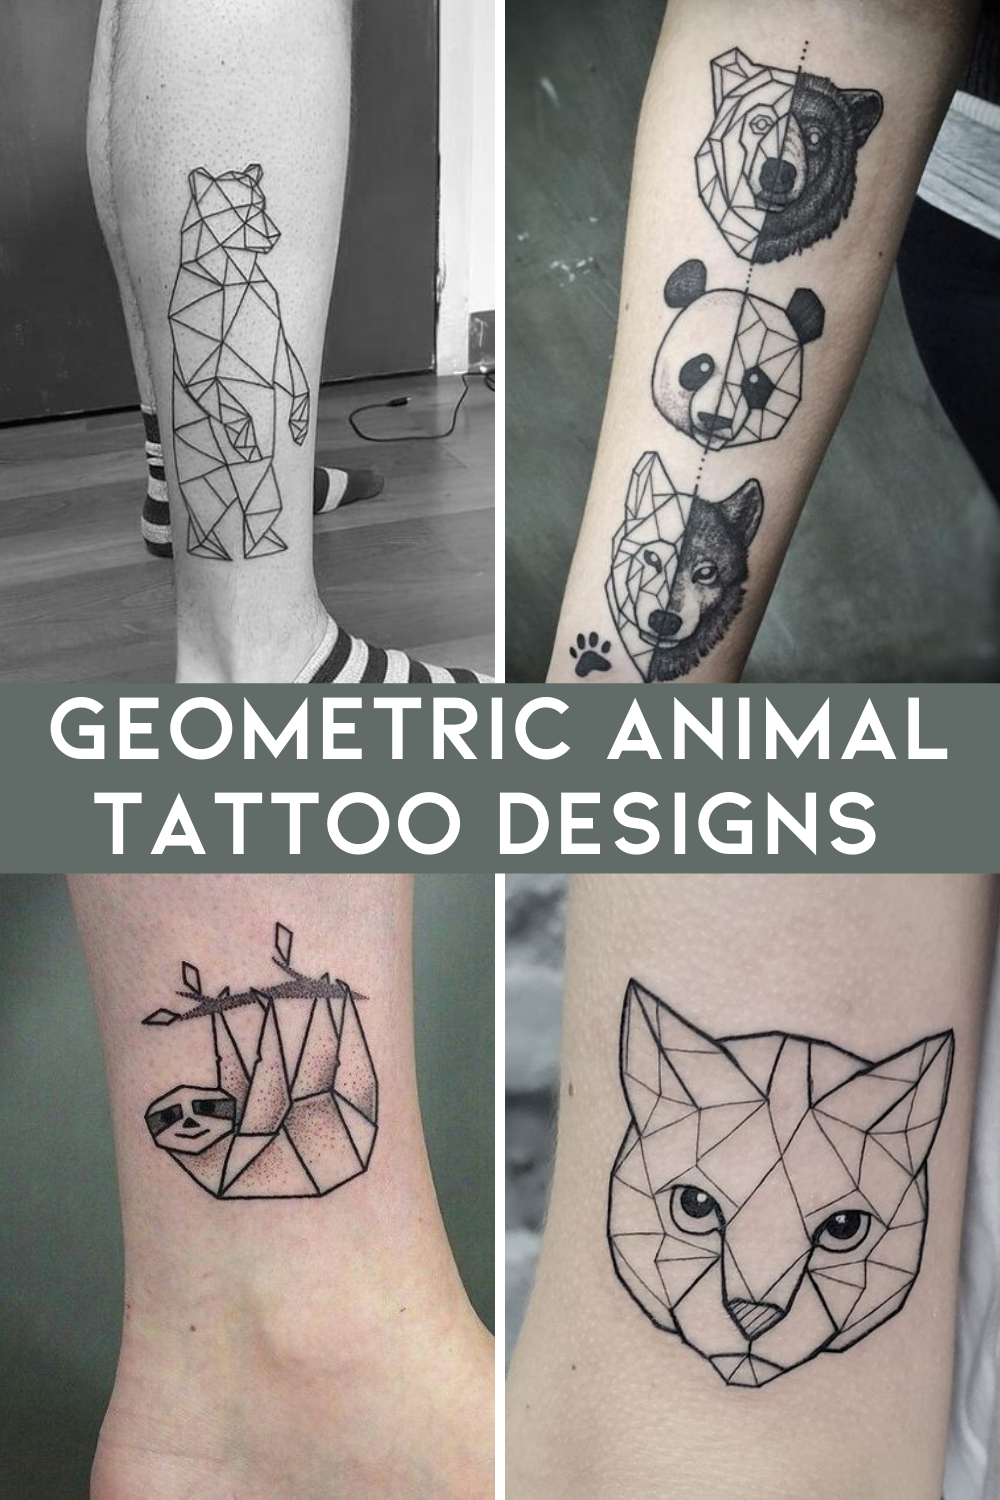 Geometric Animal Tattoos With Cool Designs